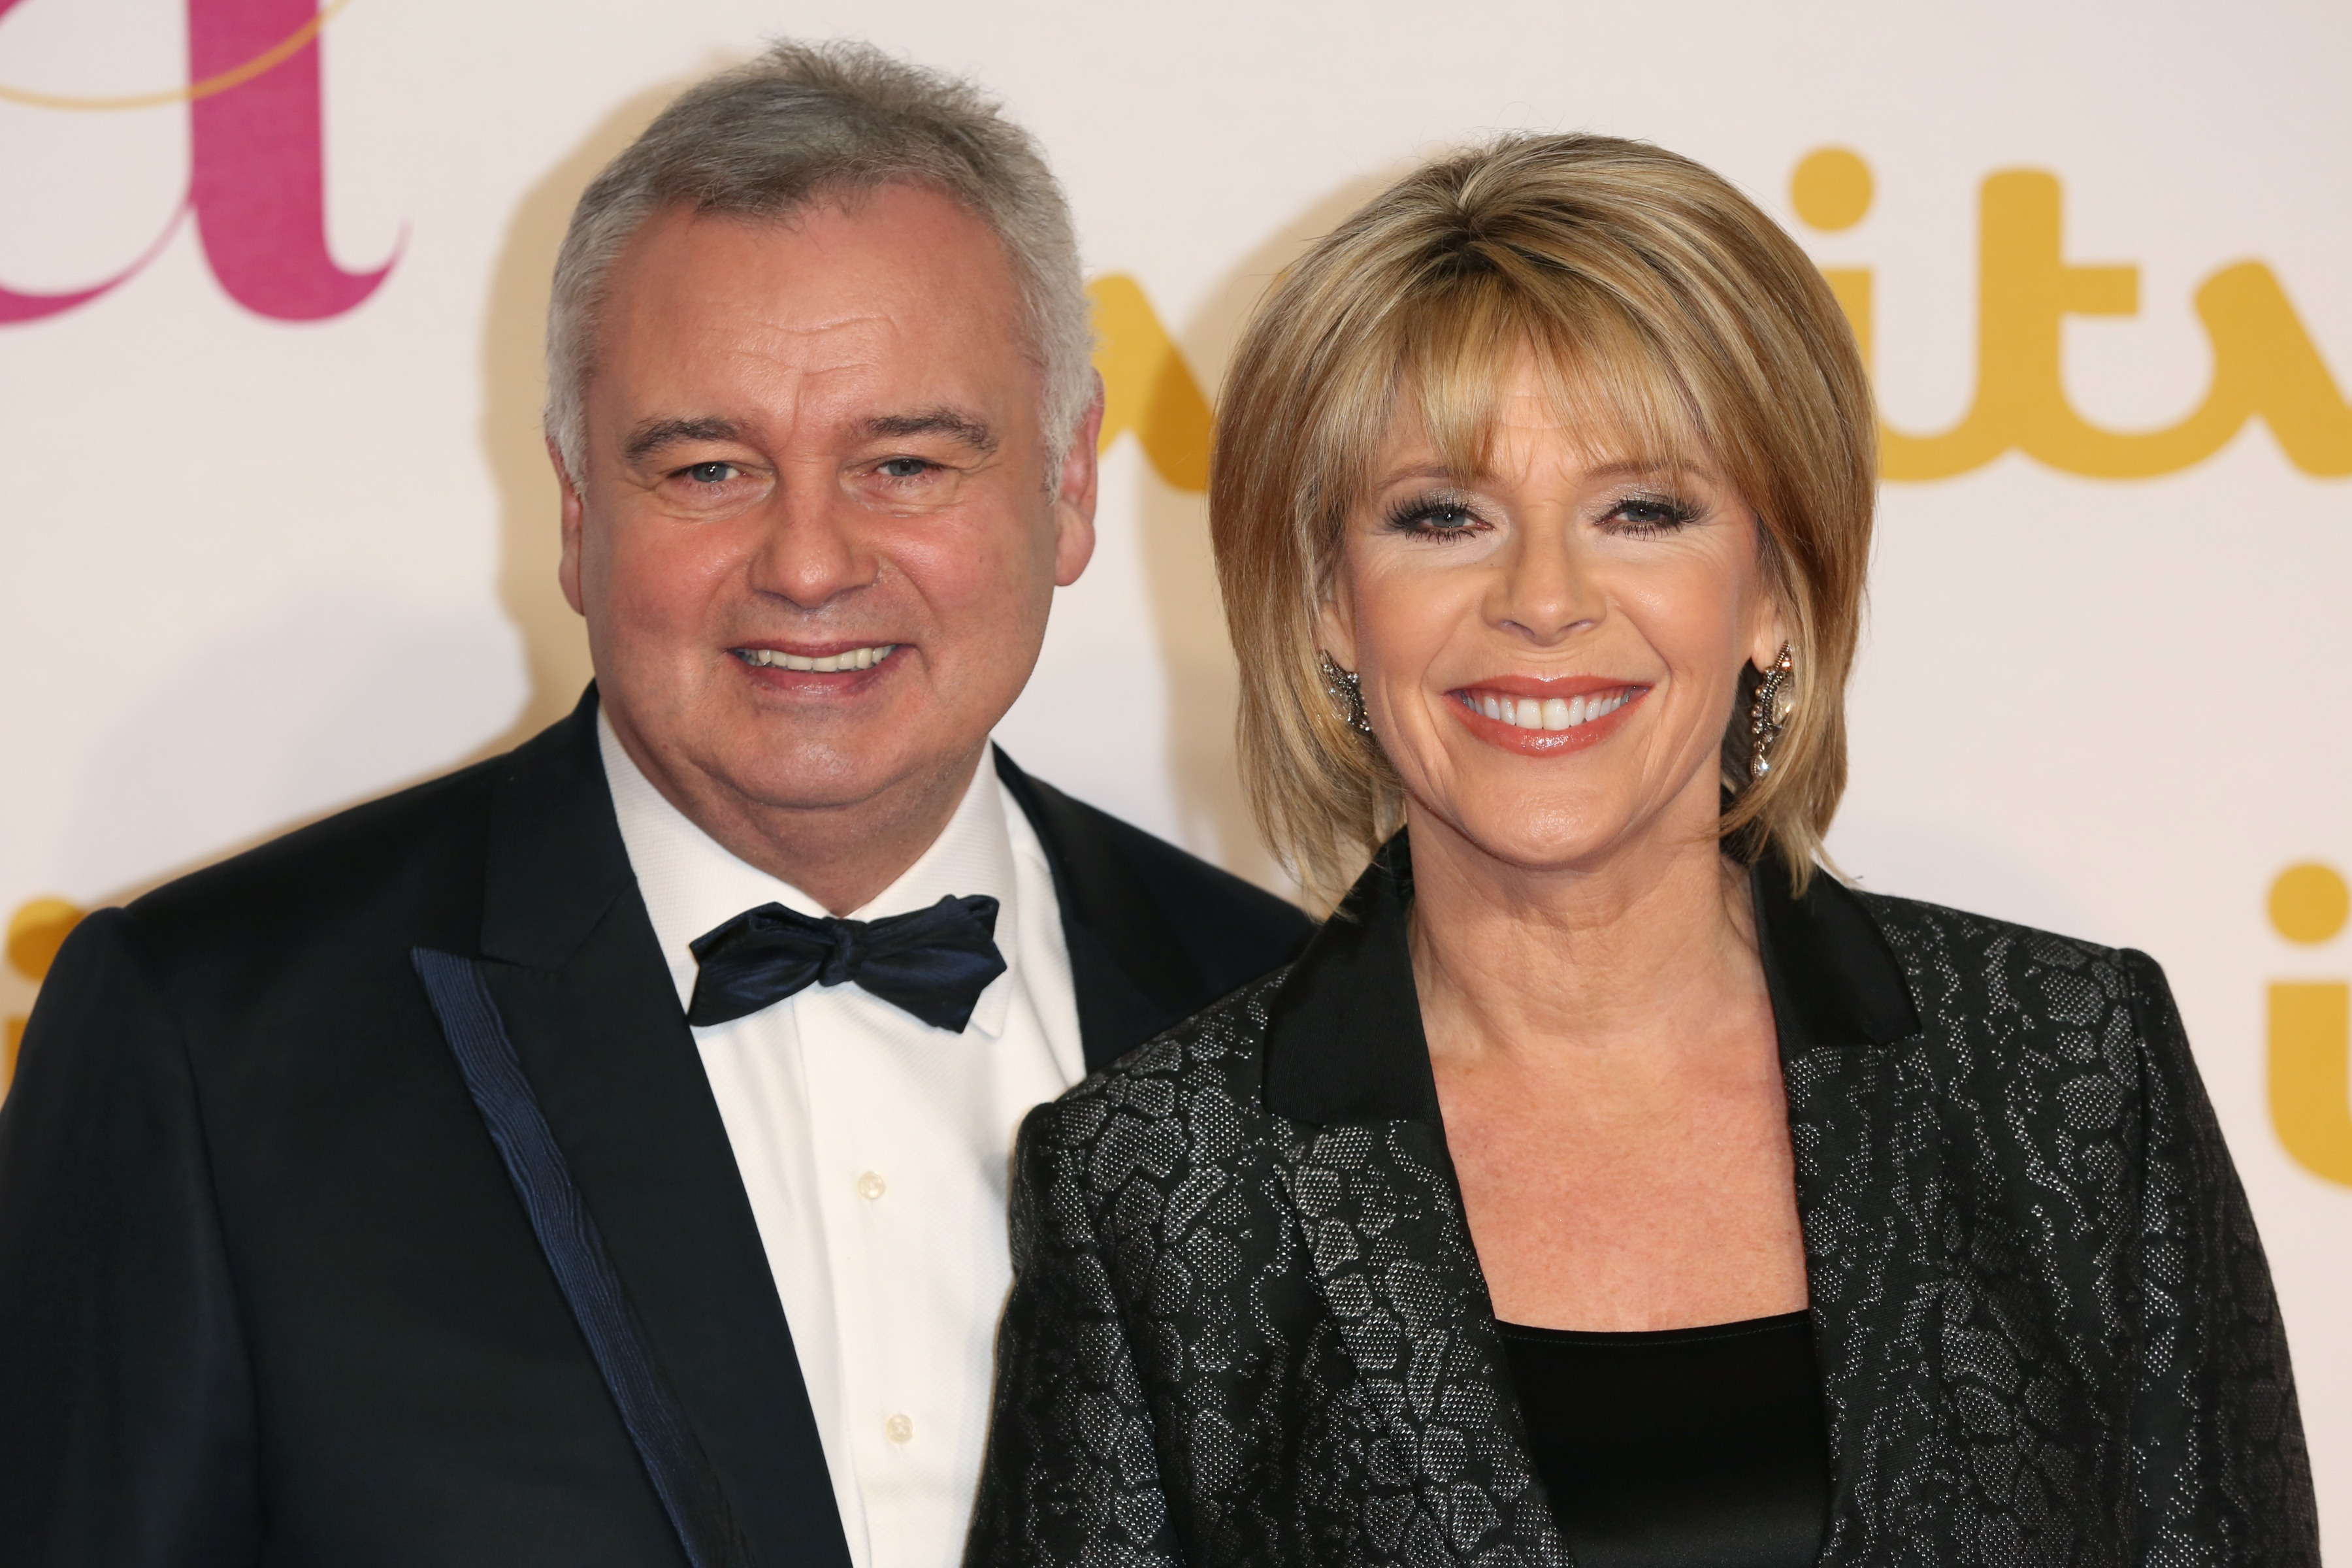 Ruth Langsford talks about keeping her relationship with Eamonn Holmes a SECRET